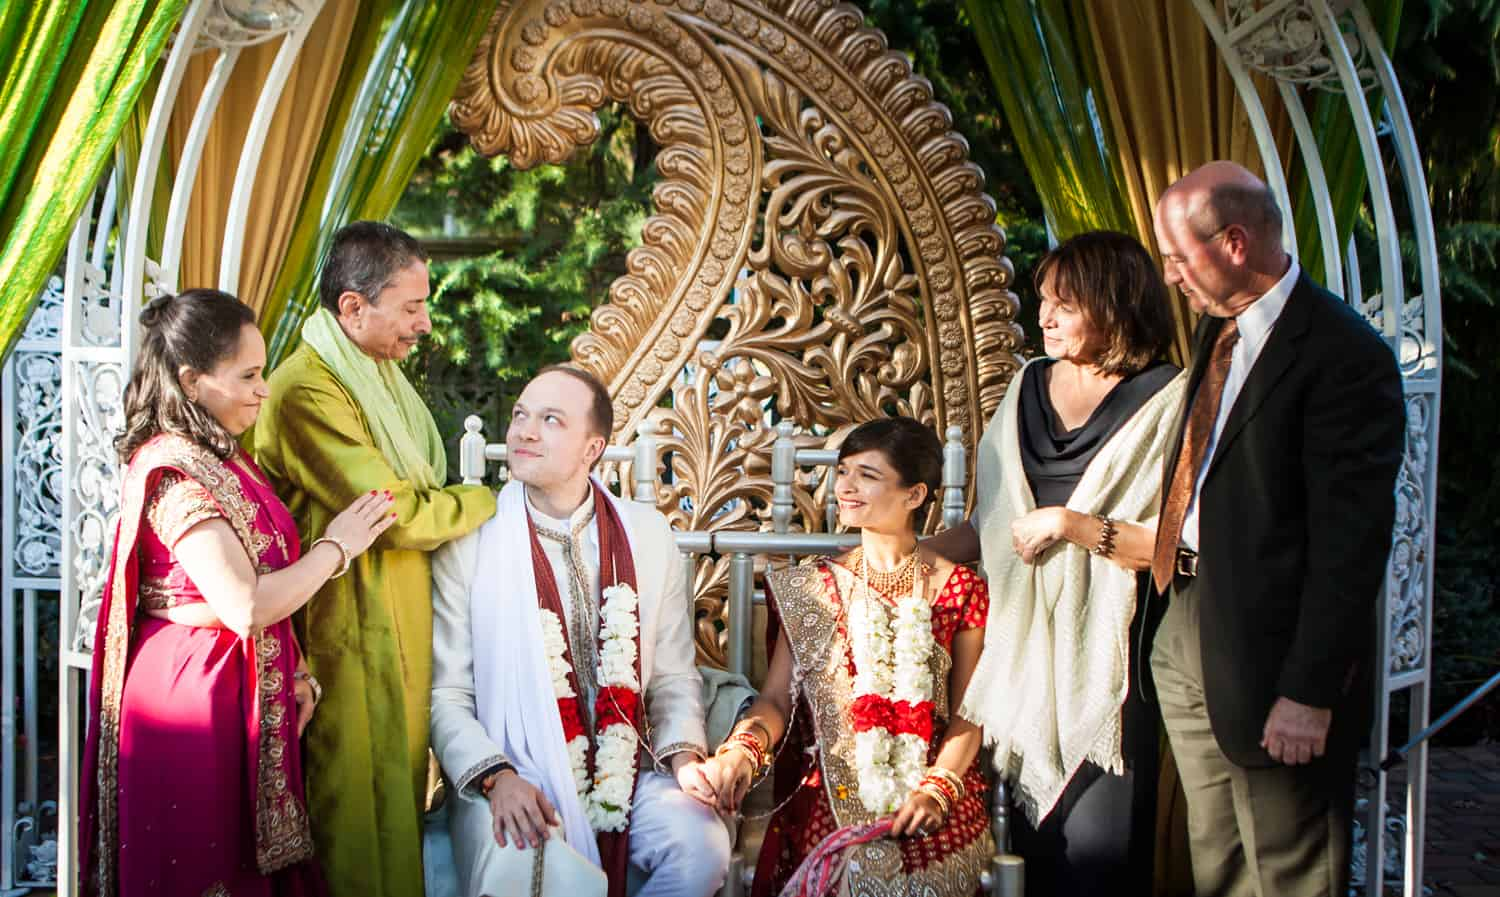 Parents speaking to bride and groom during traditional Hindu wedding ceremony